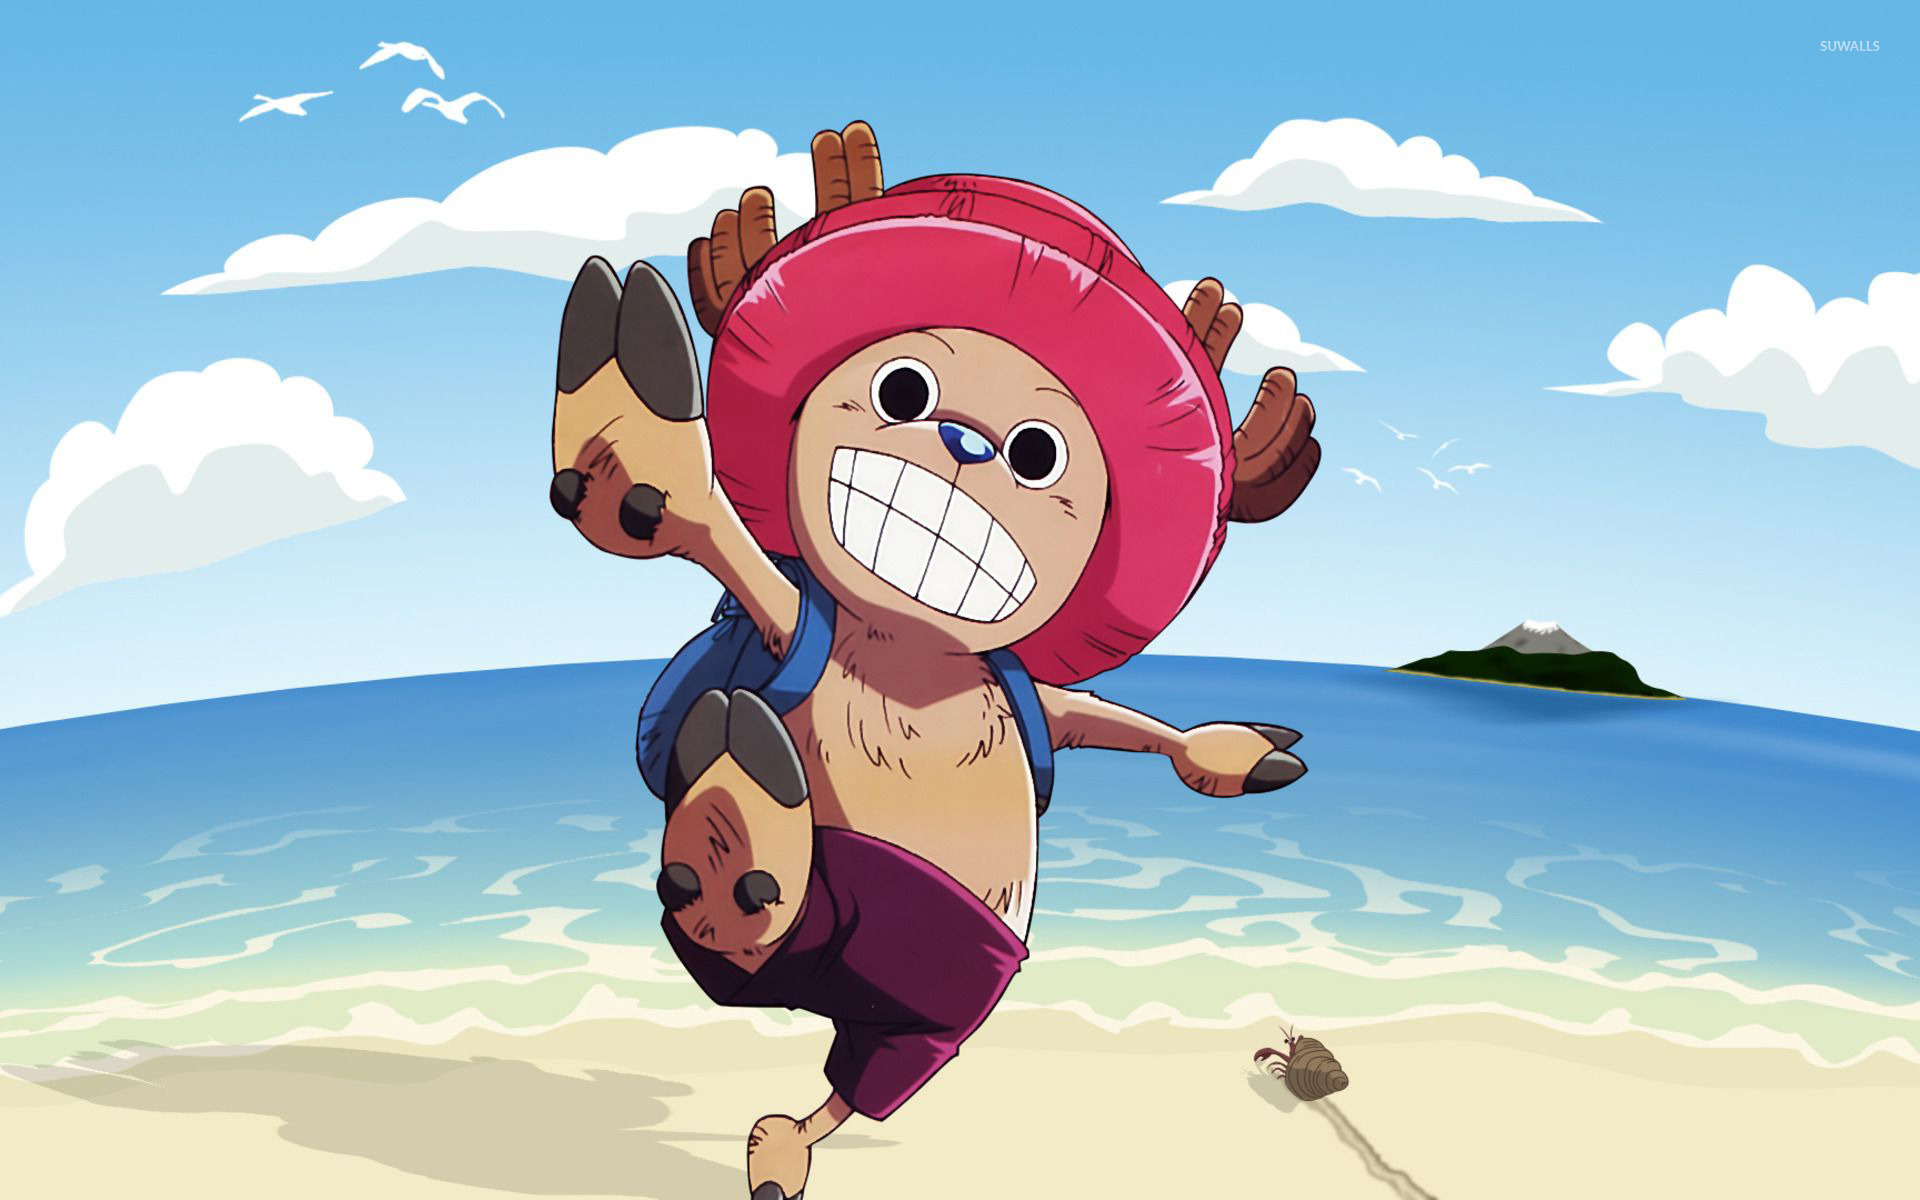 Tony Tony Chopper - One Piece wallpaper - Anime wallpapers ...